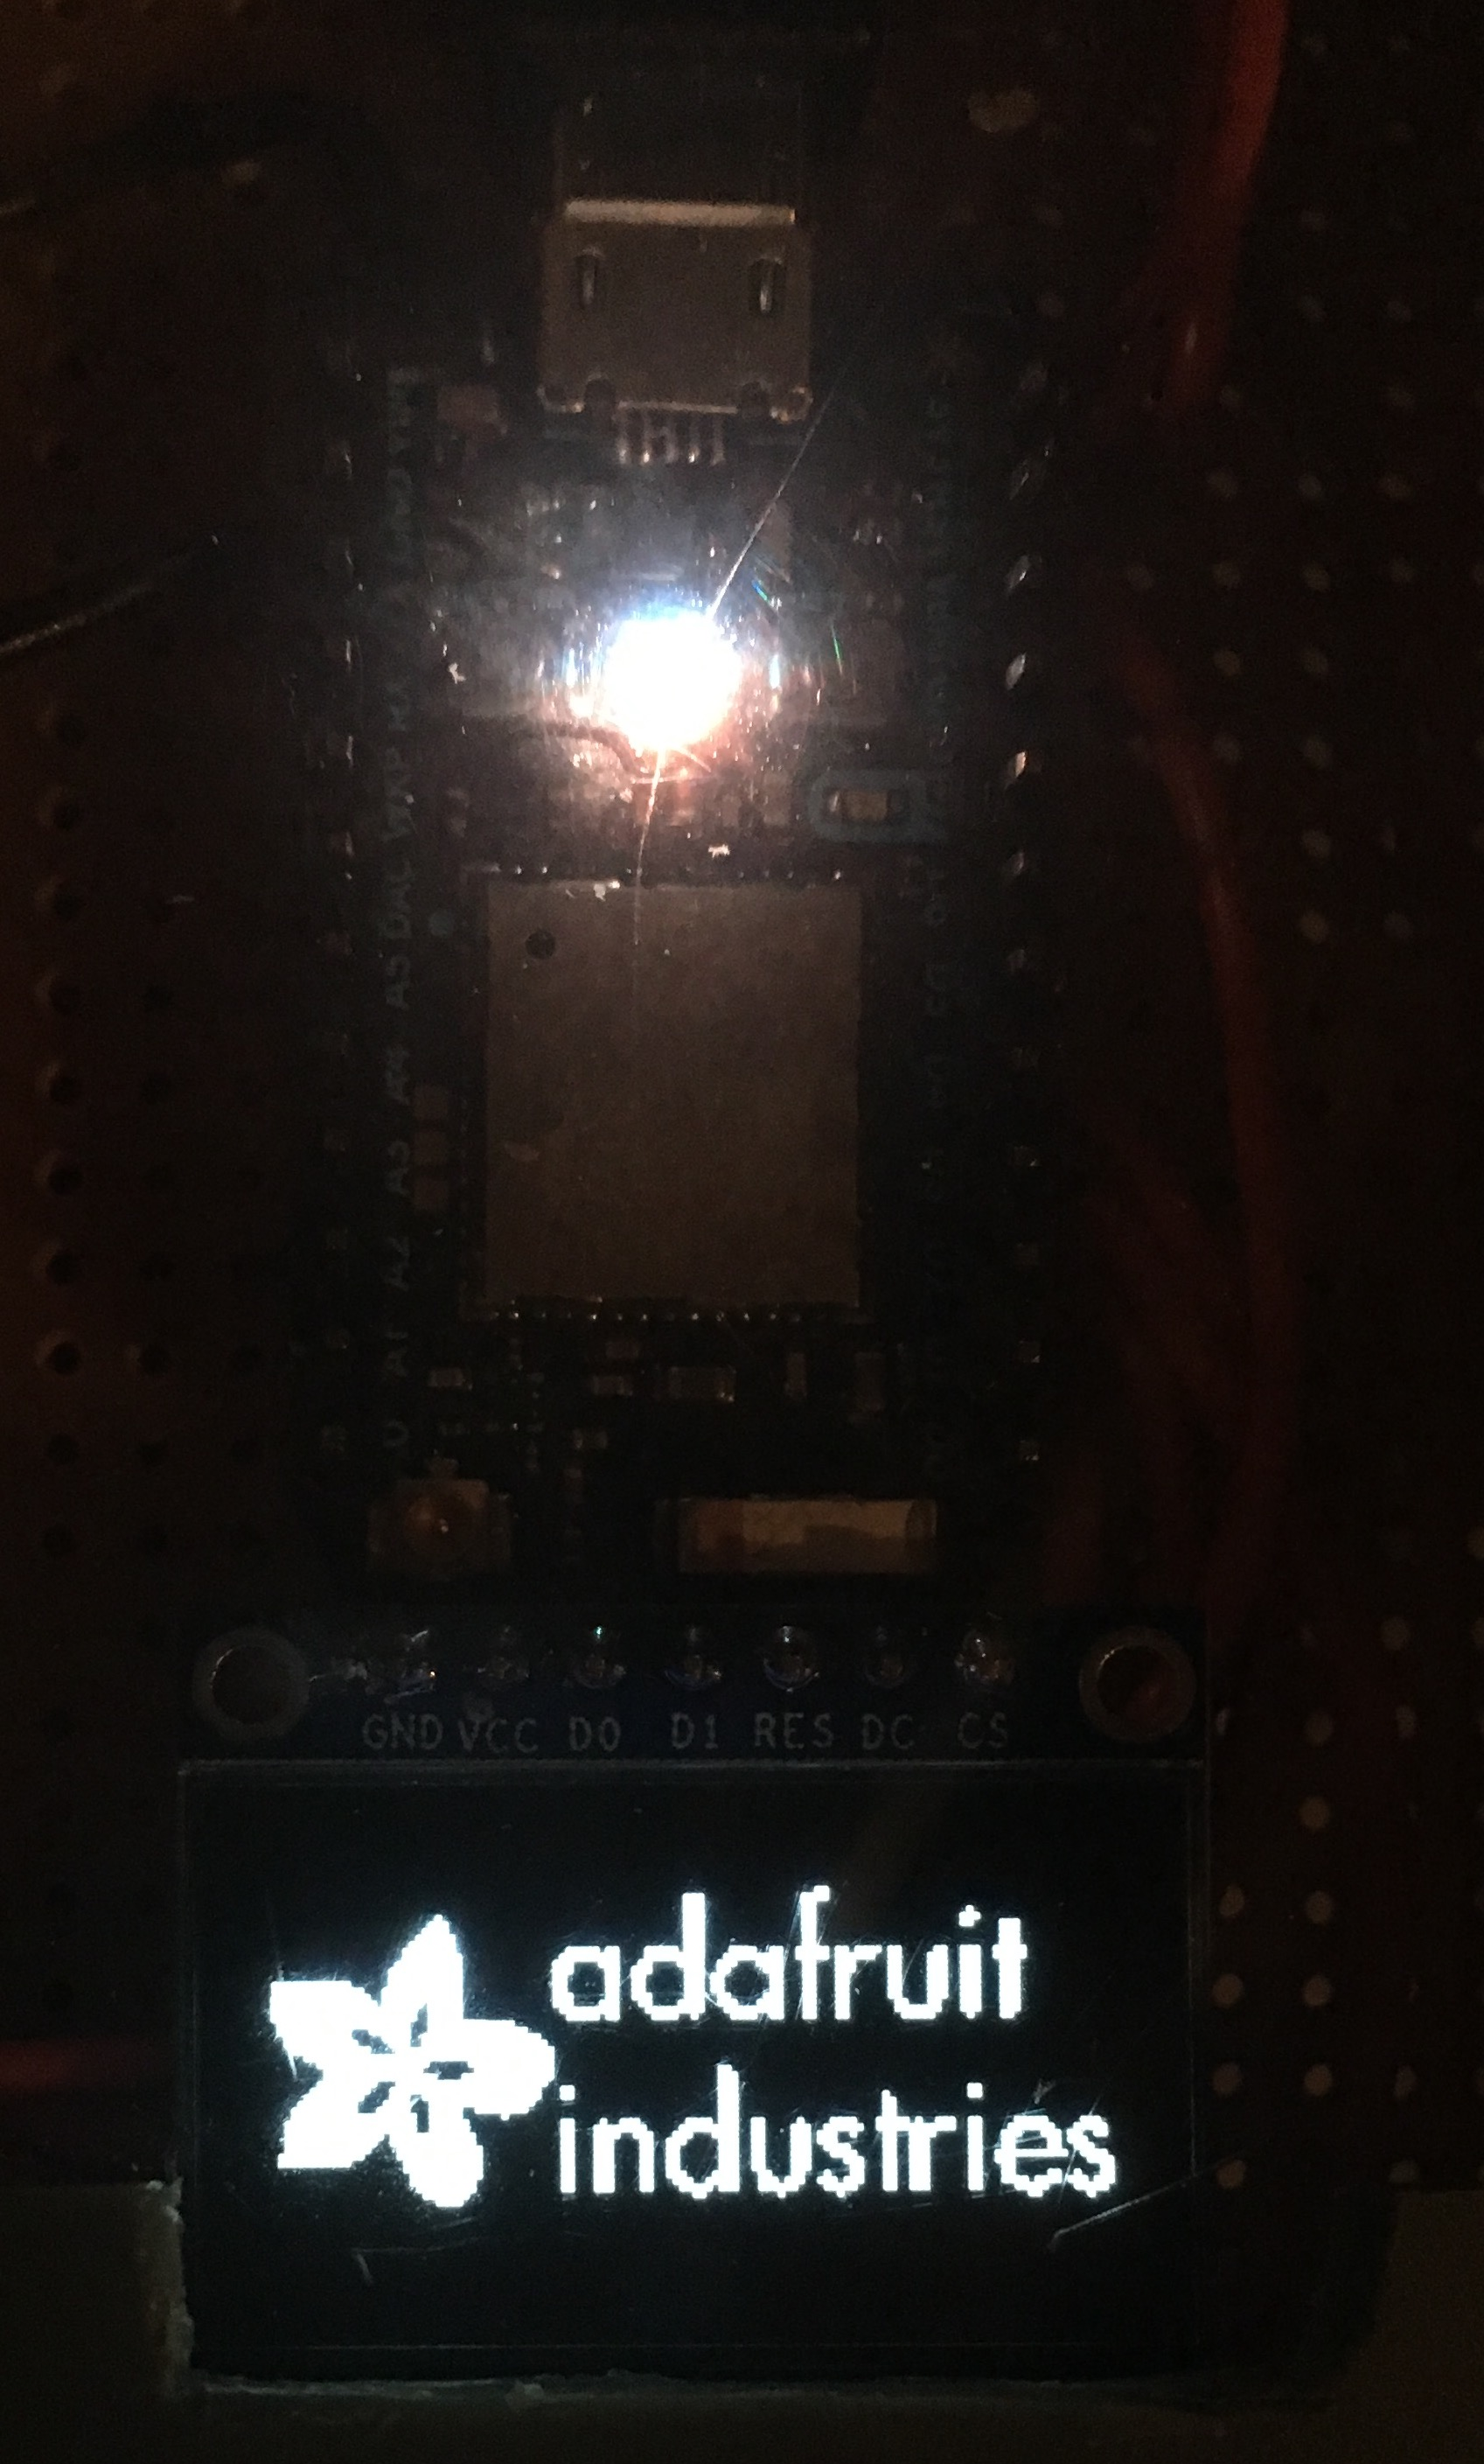 How to Add an OLED Display to Your Particle Device